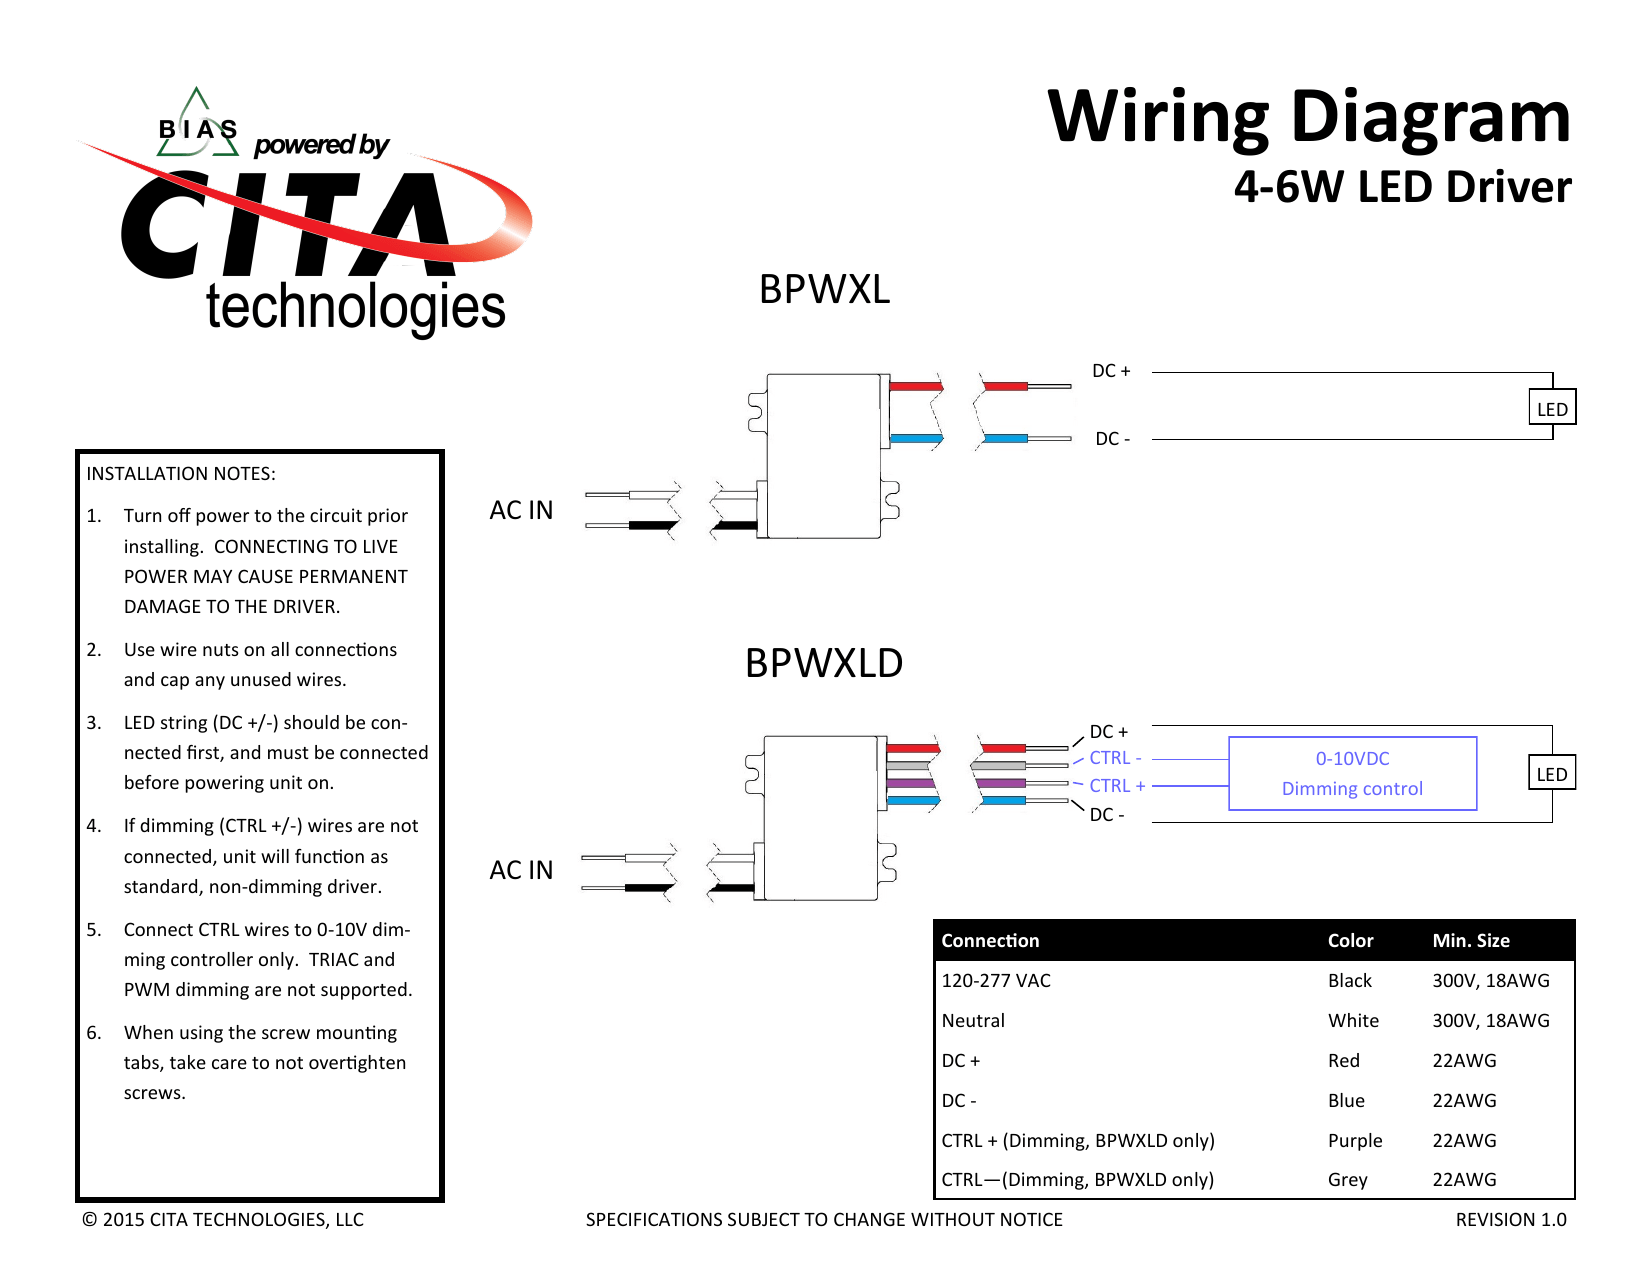 hight resolution of wiring diagram 4 6w led driver bpwxl dc led dc installation notes 1 turn off power to the circuit prior installing connecting to live power may cause